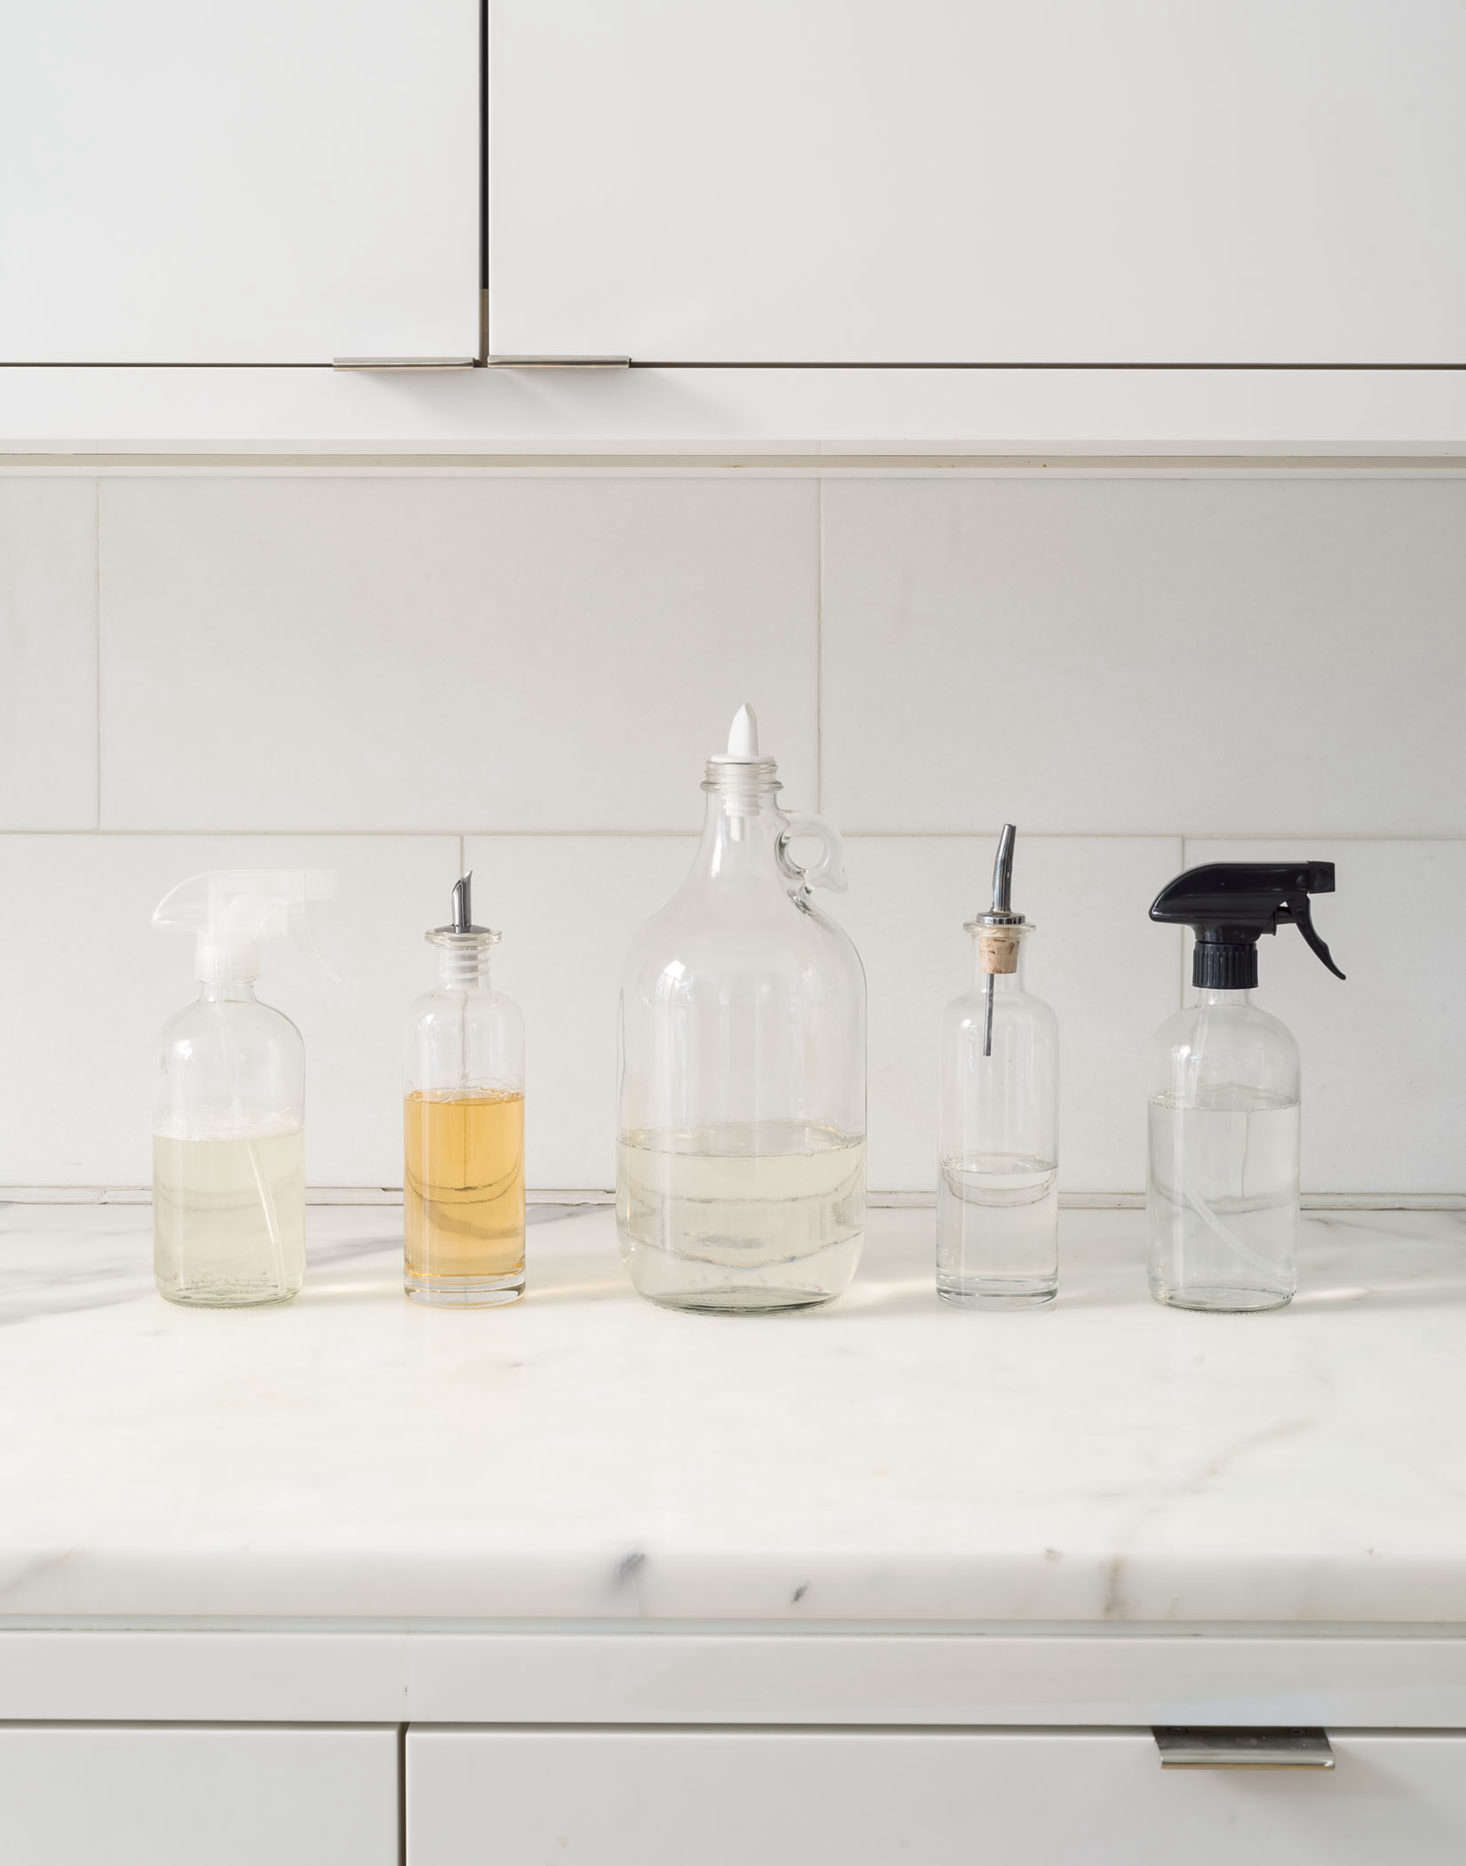 Decanted Kitchen Cleaning Products Photo By Matthew Williams Styling Alexa  Hotz